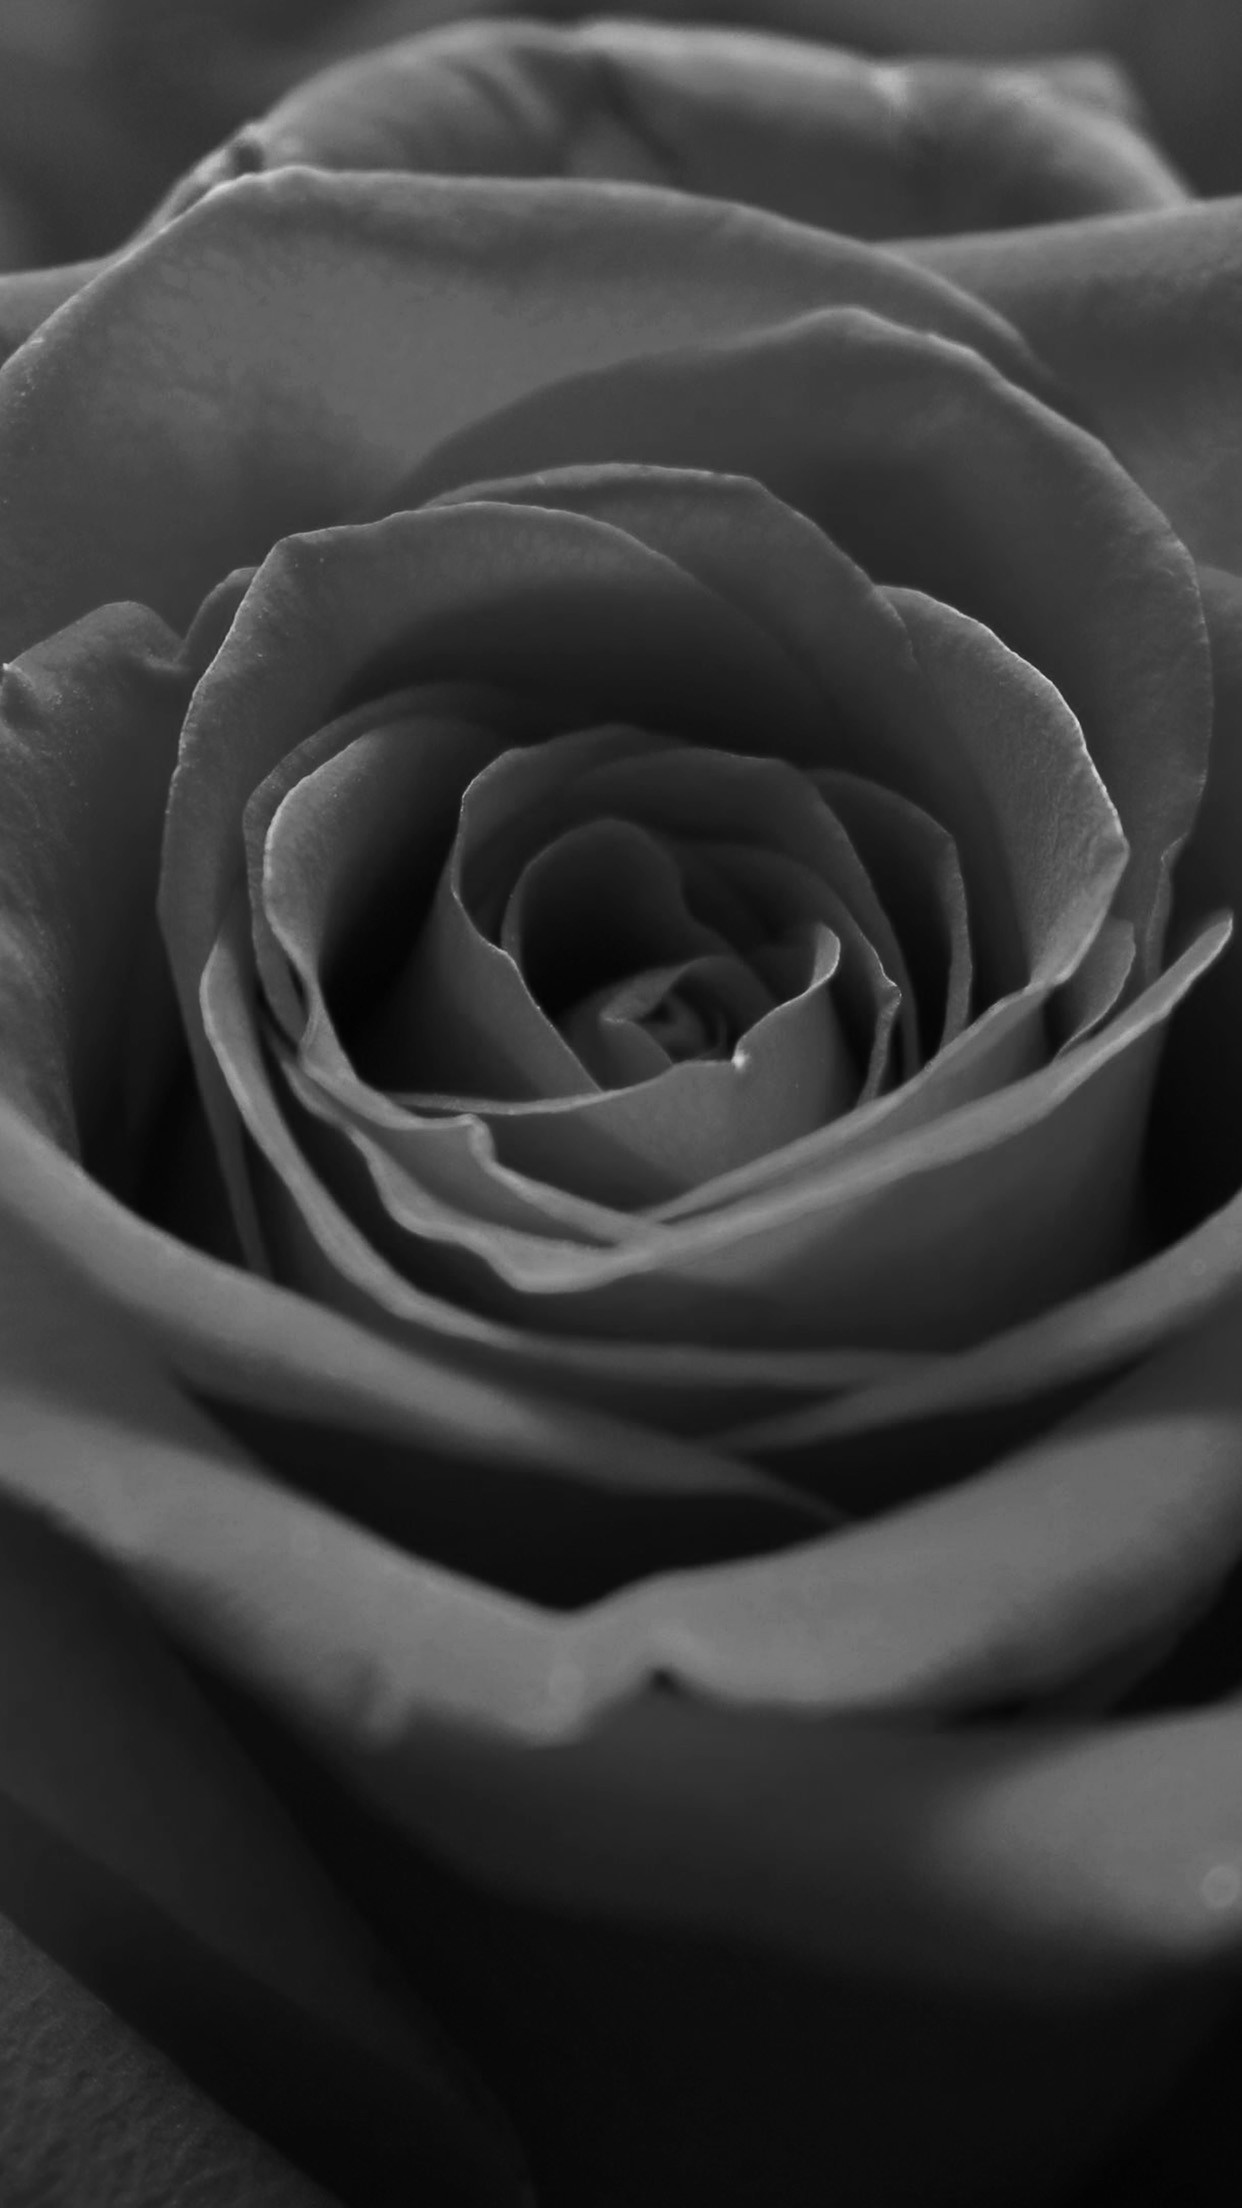 1242x2208 Black And White Macro Rose Flower Grey Dark Android Wallpaper